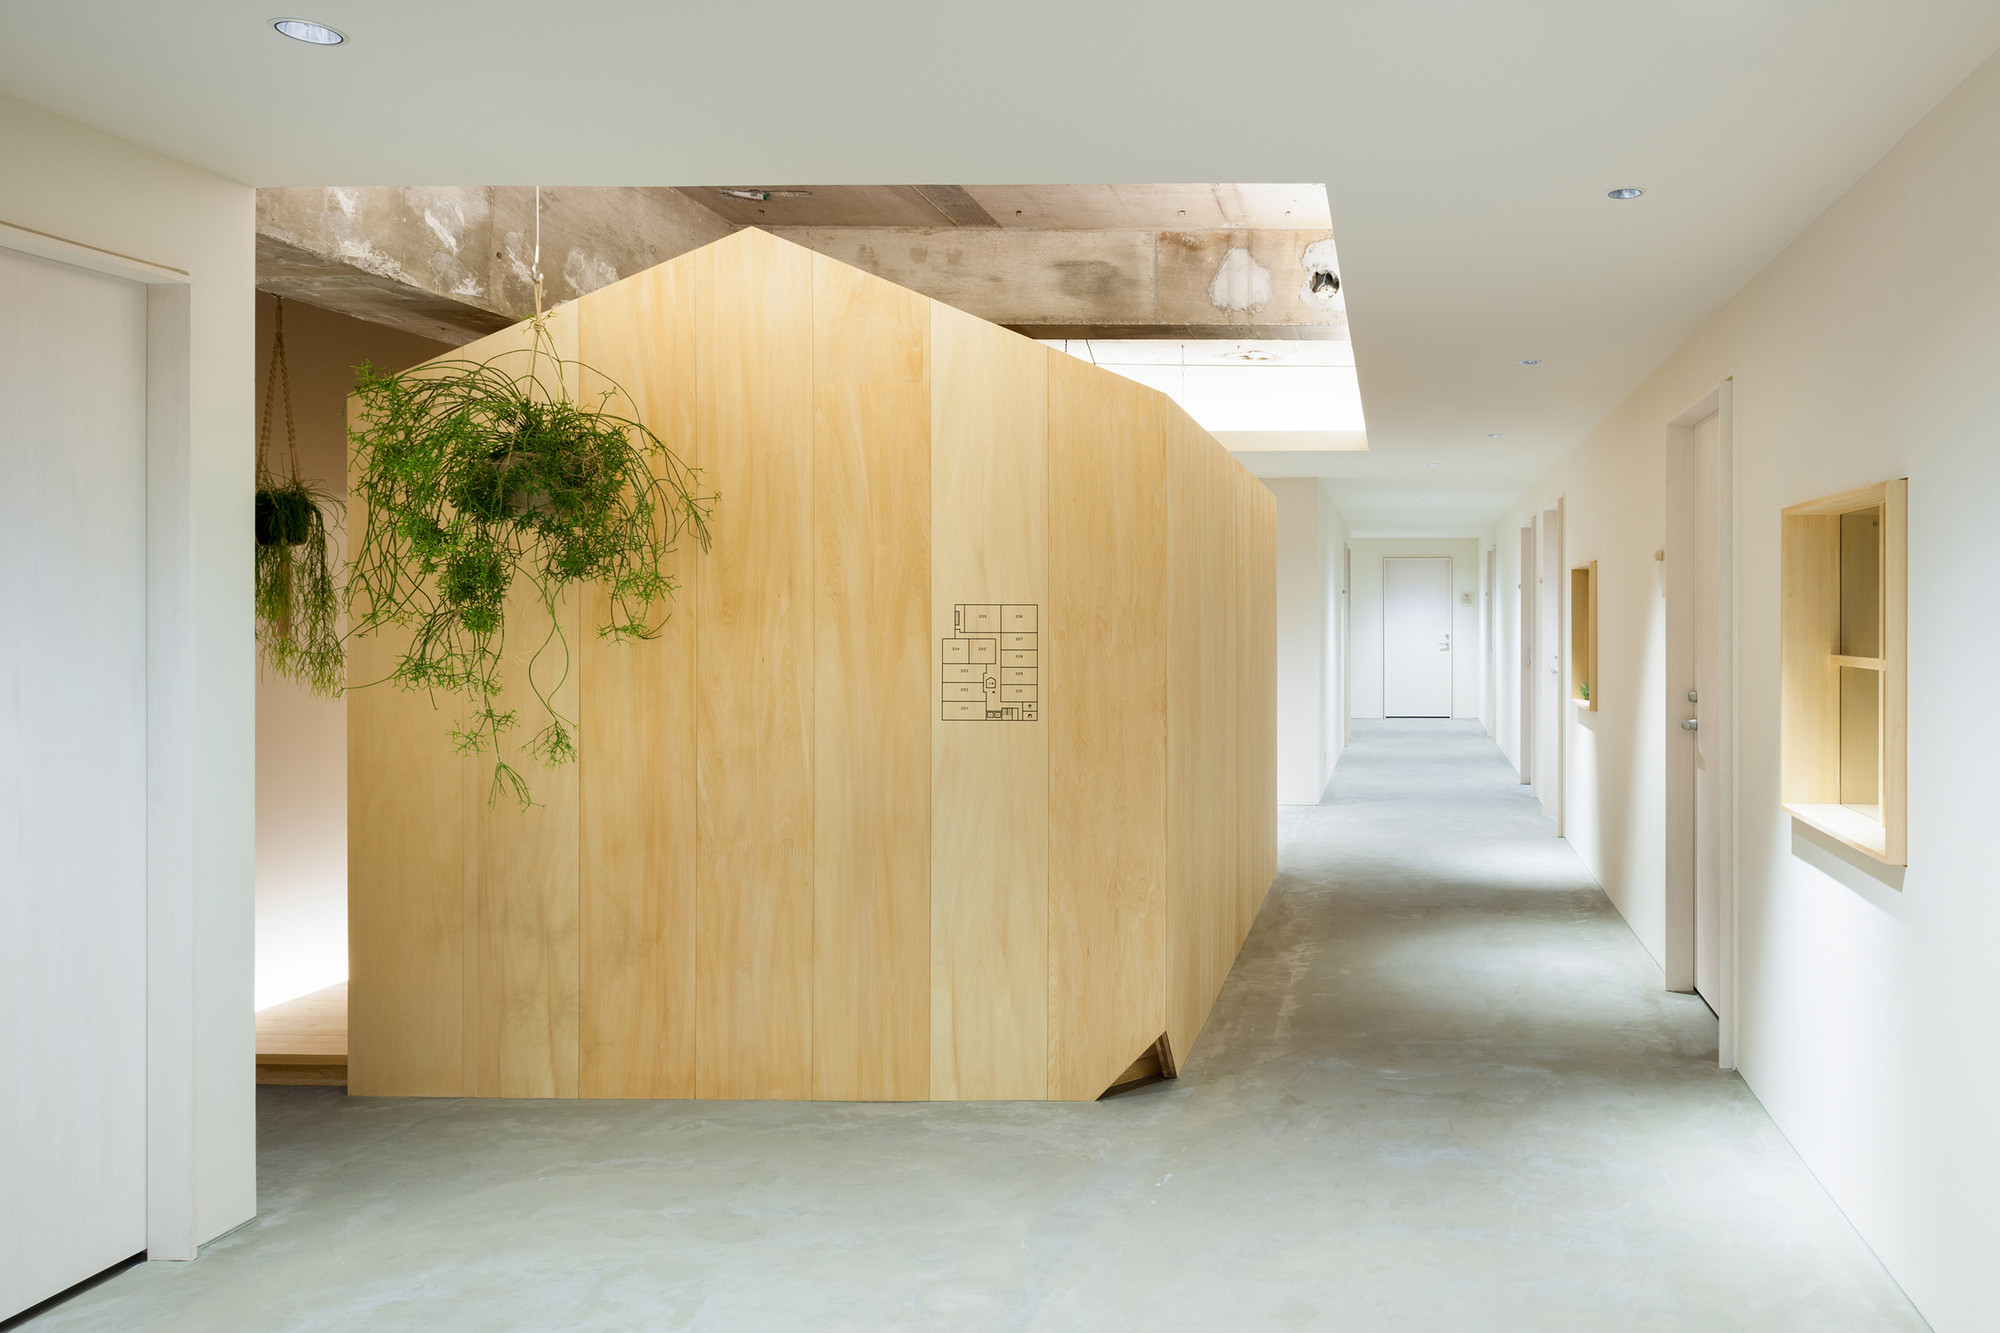 A Hut on the Corridor / Tsubasa Iwahashi Architects, © Takumi Ota